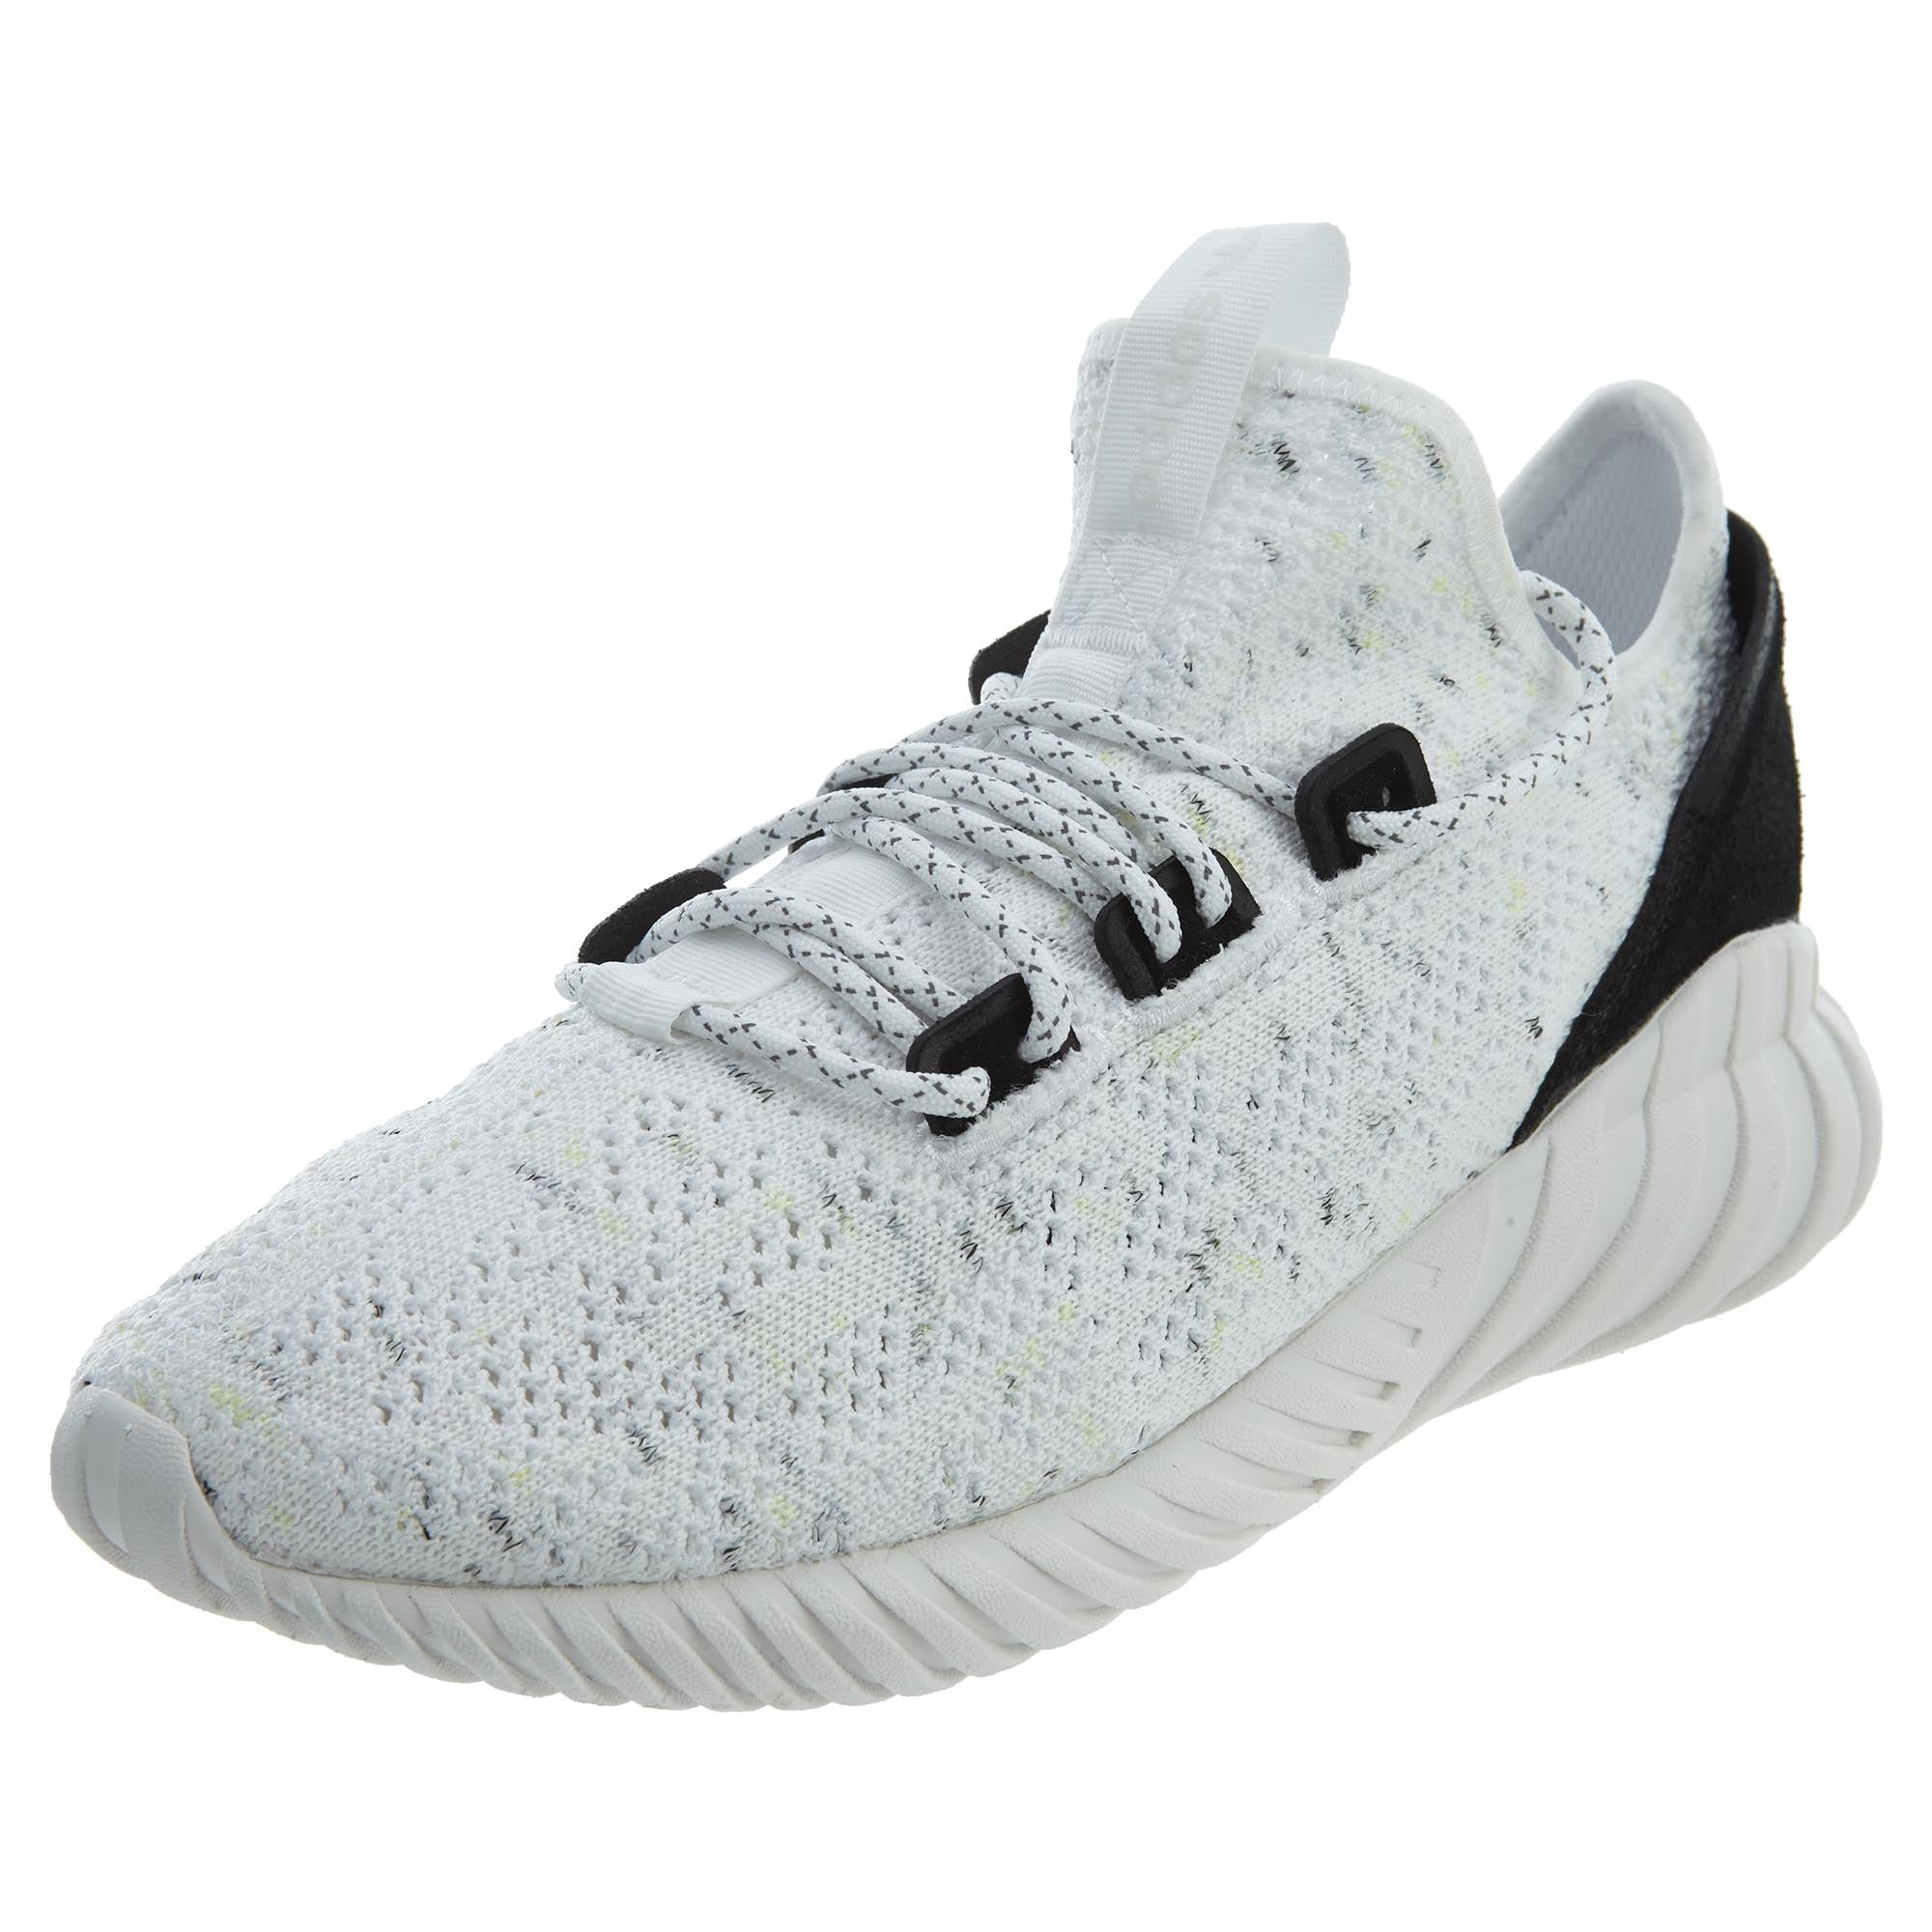 Adidas Tubular Doom Sock Pk Mens By3558 – Sneaker Experts ccb45df2c1